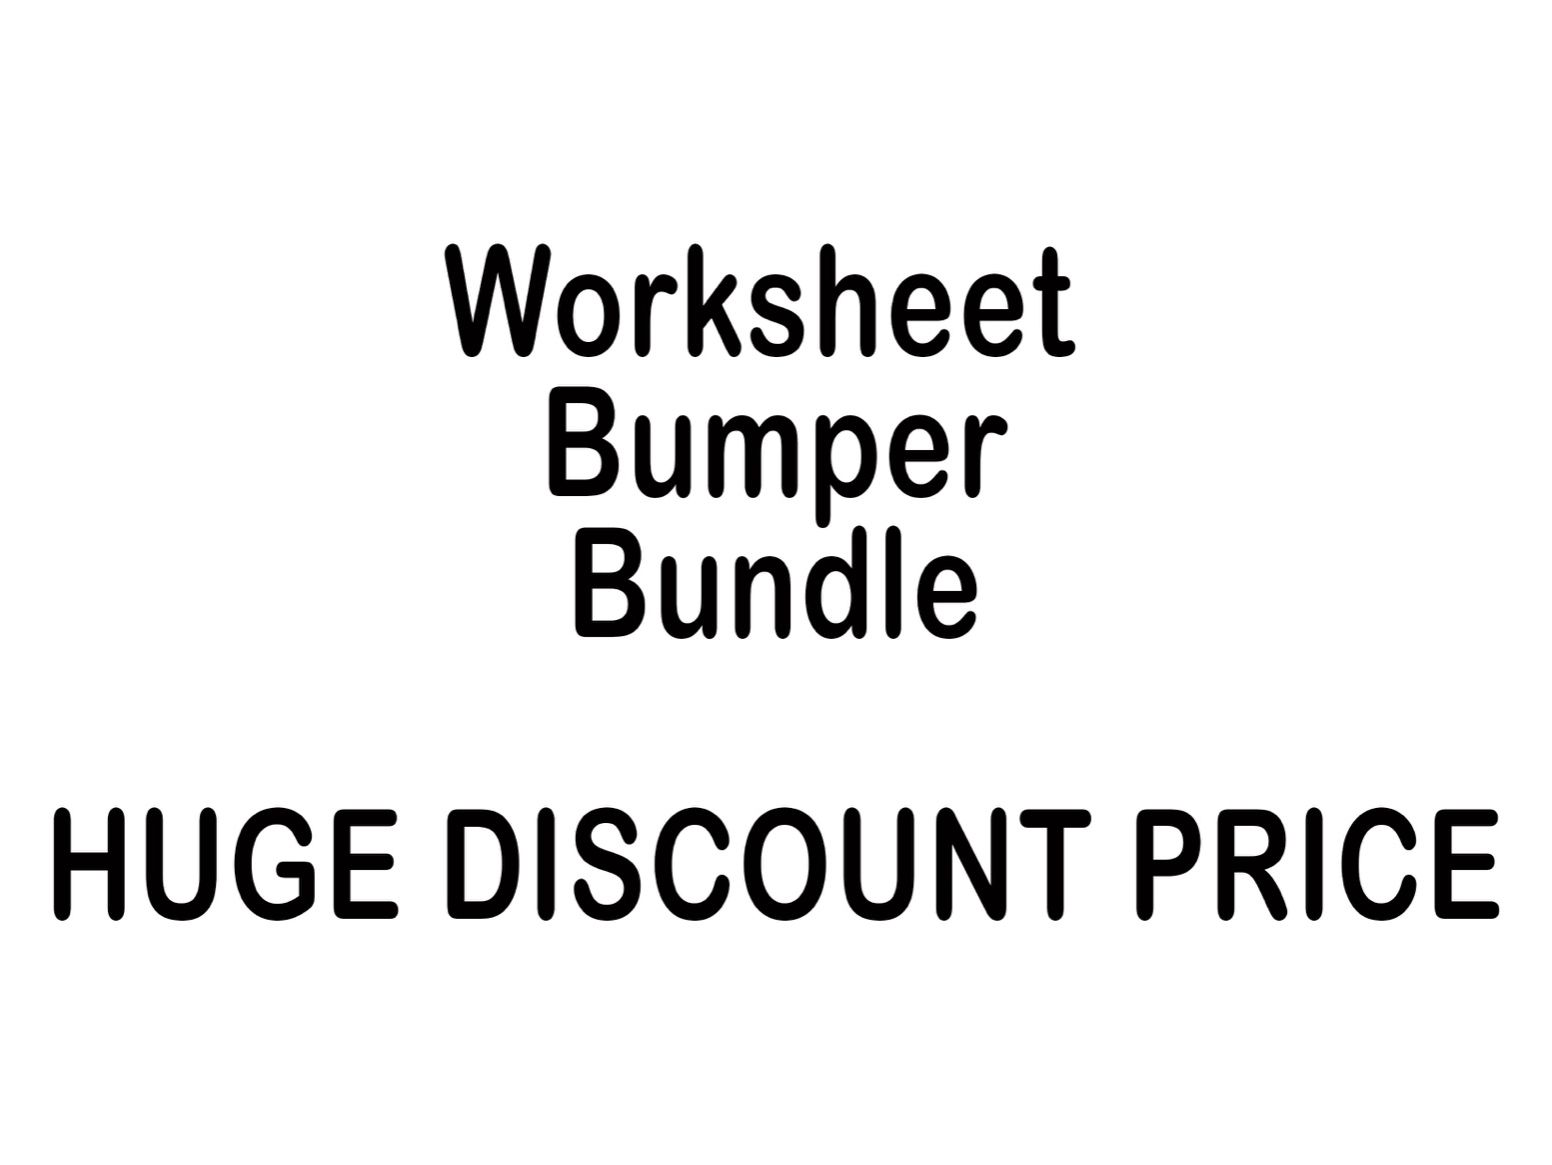 Worksheet Bumper Bundle